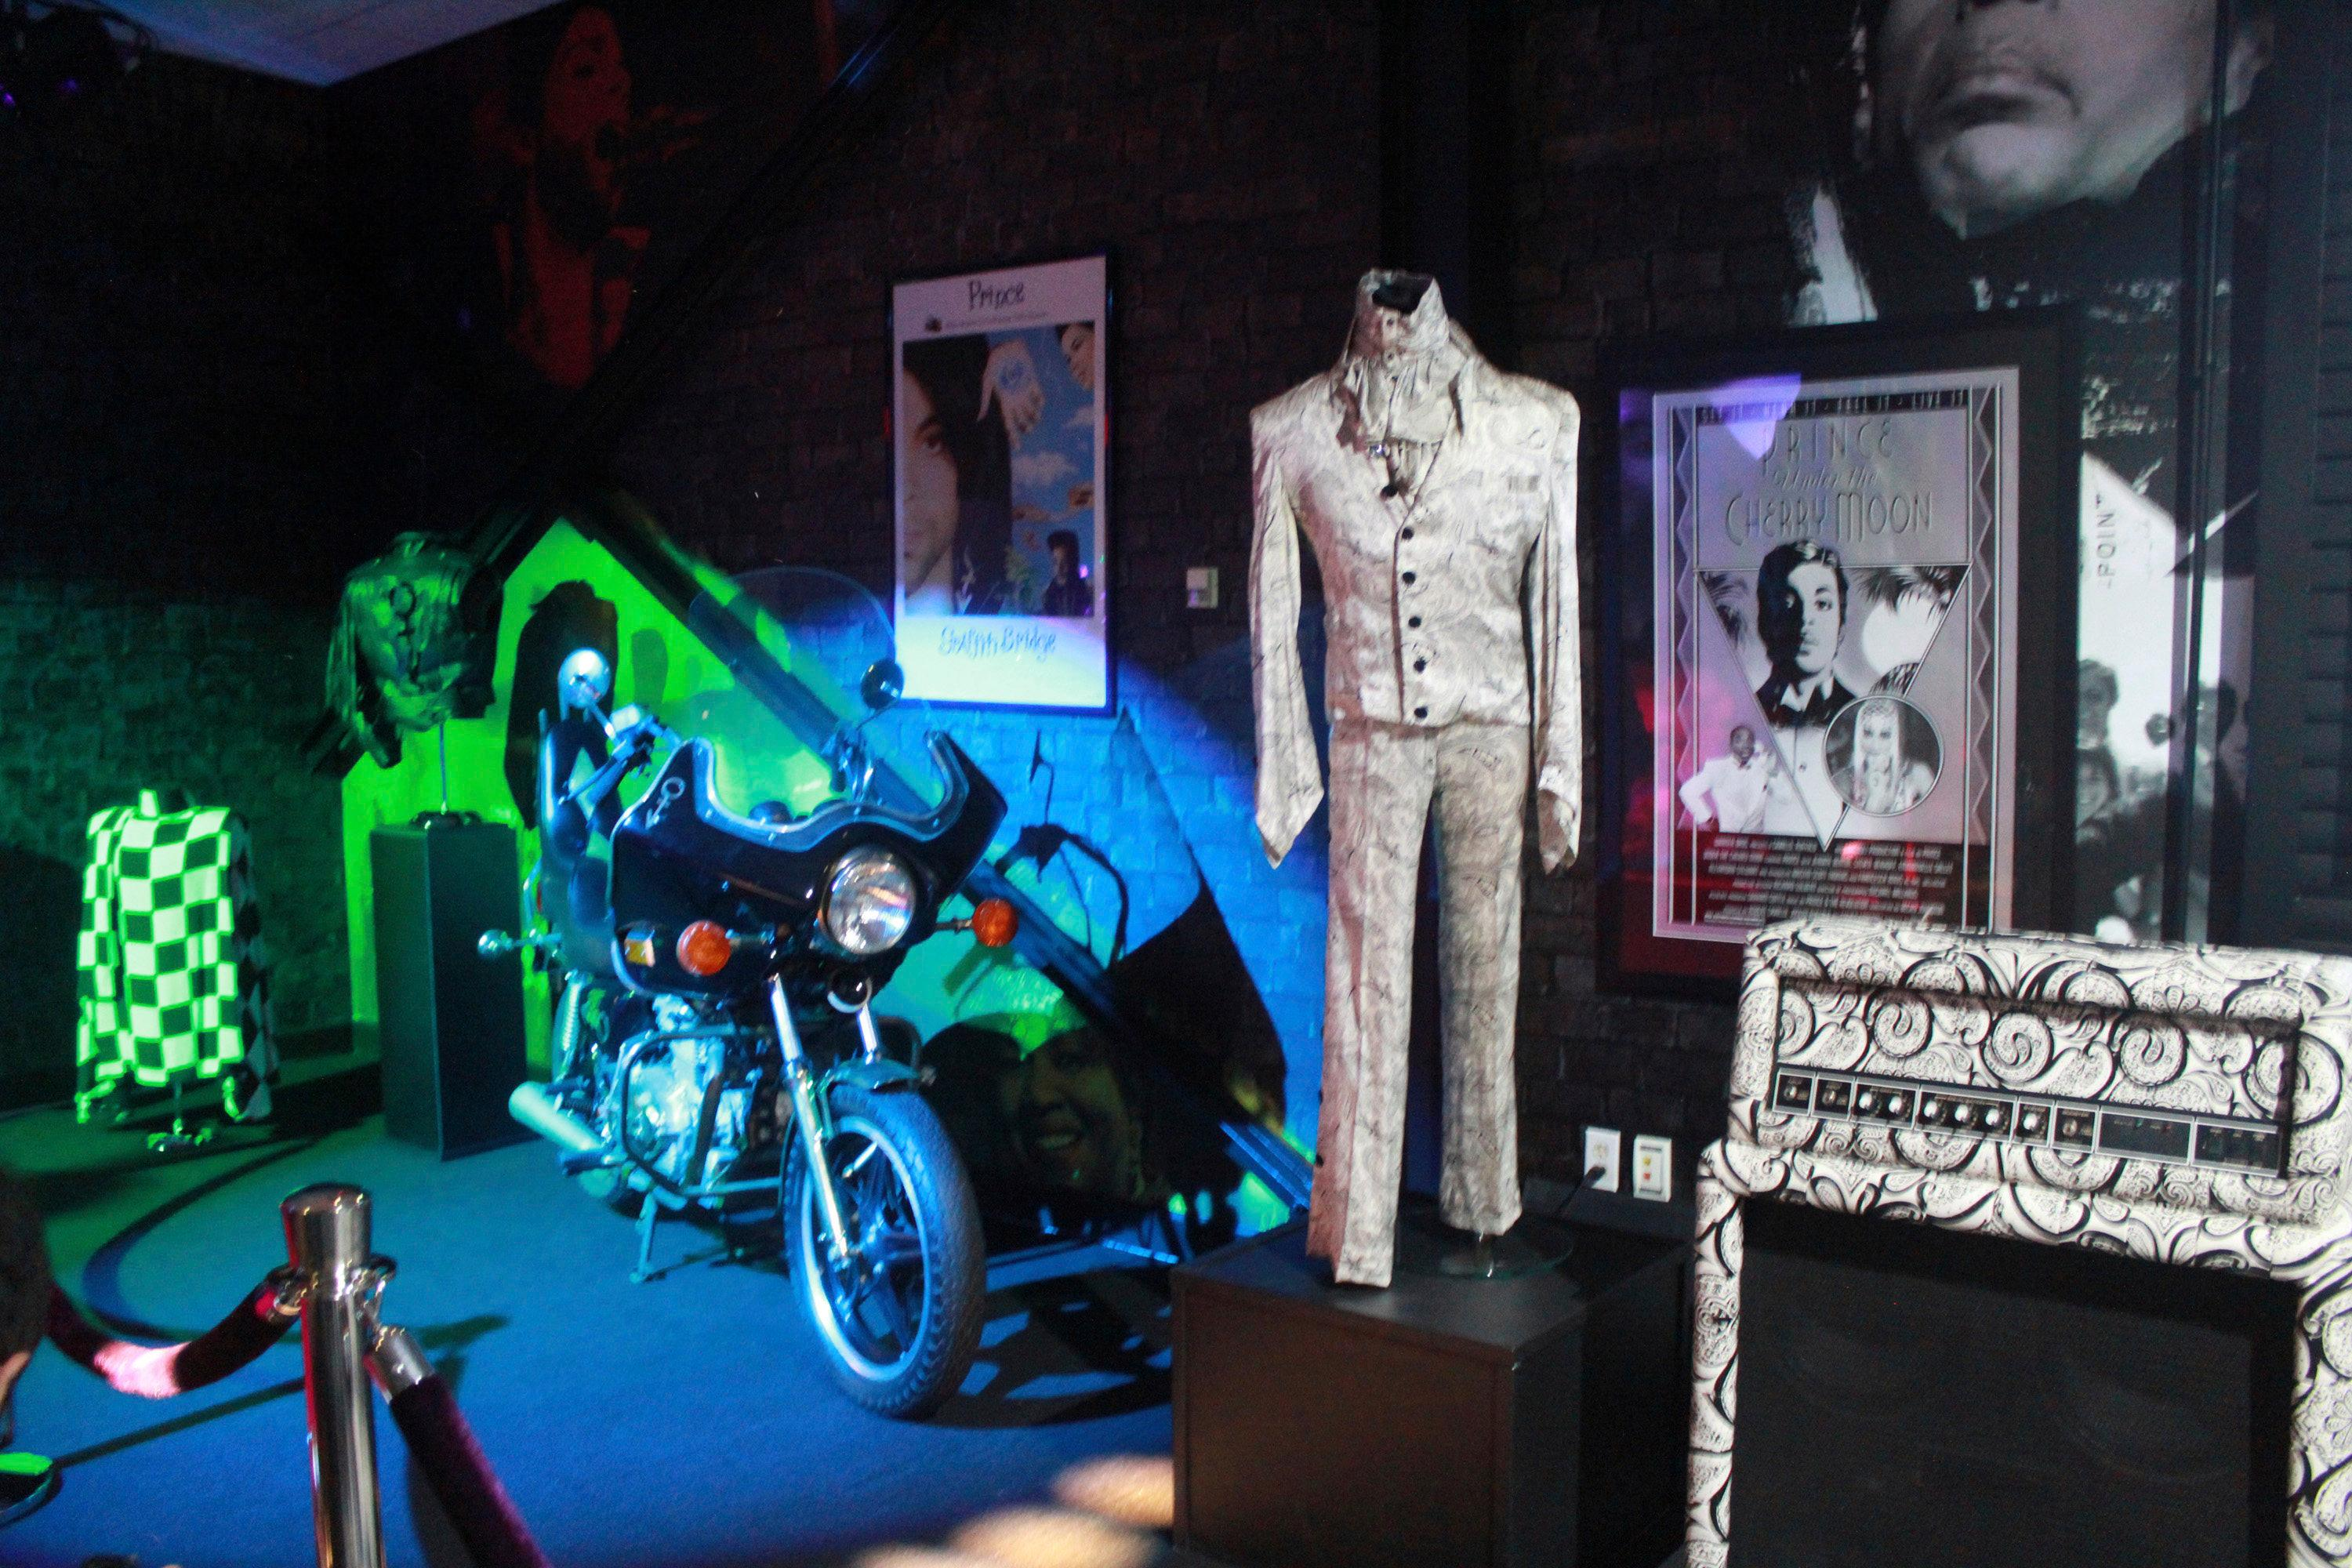 "FILE - In this Nov. 2, 2016 file photo, a Prince costume and motorcycle are on display at Prince's Paisley Park in Chanhassen, Minn. Paisley Park, home and studio of the late musician Prince, is open for public tours. At his home and recording studio-turned-museum, a full four days of events are on tap for the one-year anniversary of his death on April 21, 2016, ranging from concert performances by the great one's former band mates to panel discussions on his legacy. Fans who can't afford those high-dollar tickets can head to a street party outside the club he made famous in ""Purple Rain."" (AP Photo/Jeff Baenen, File)"